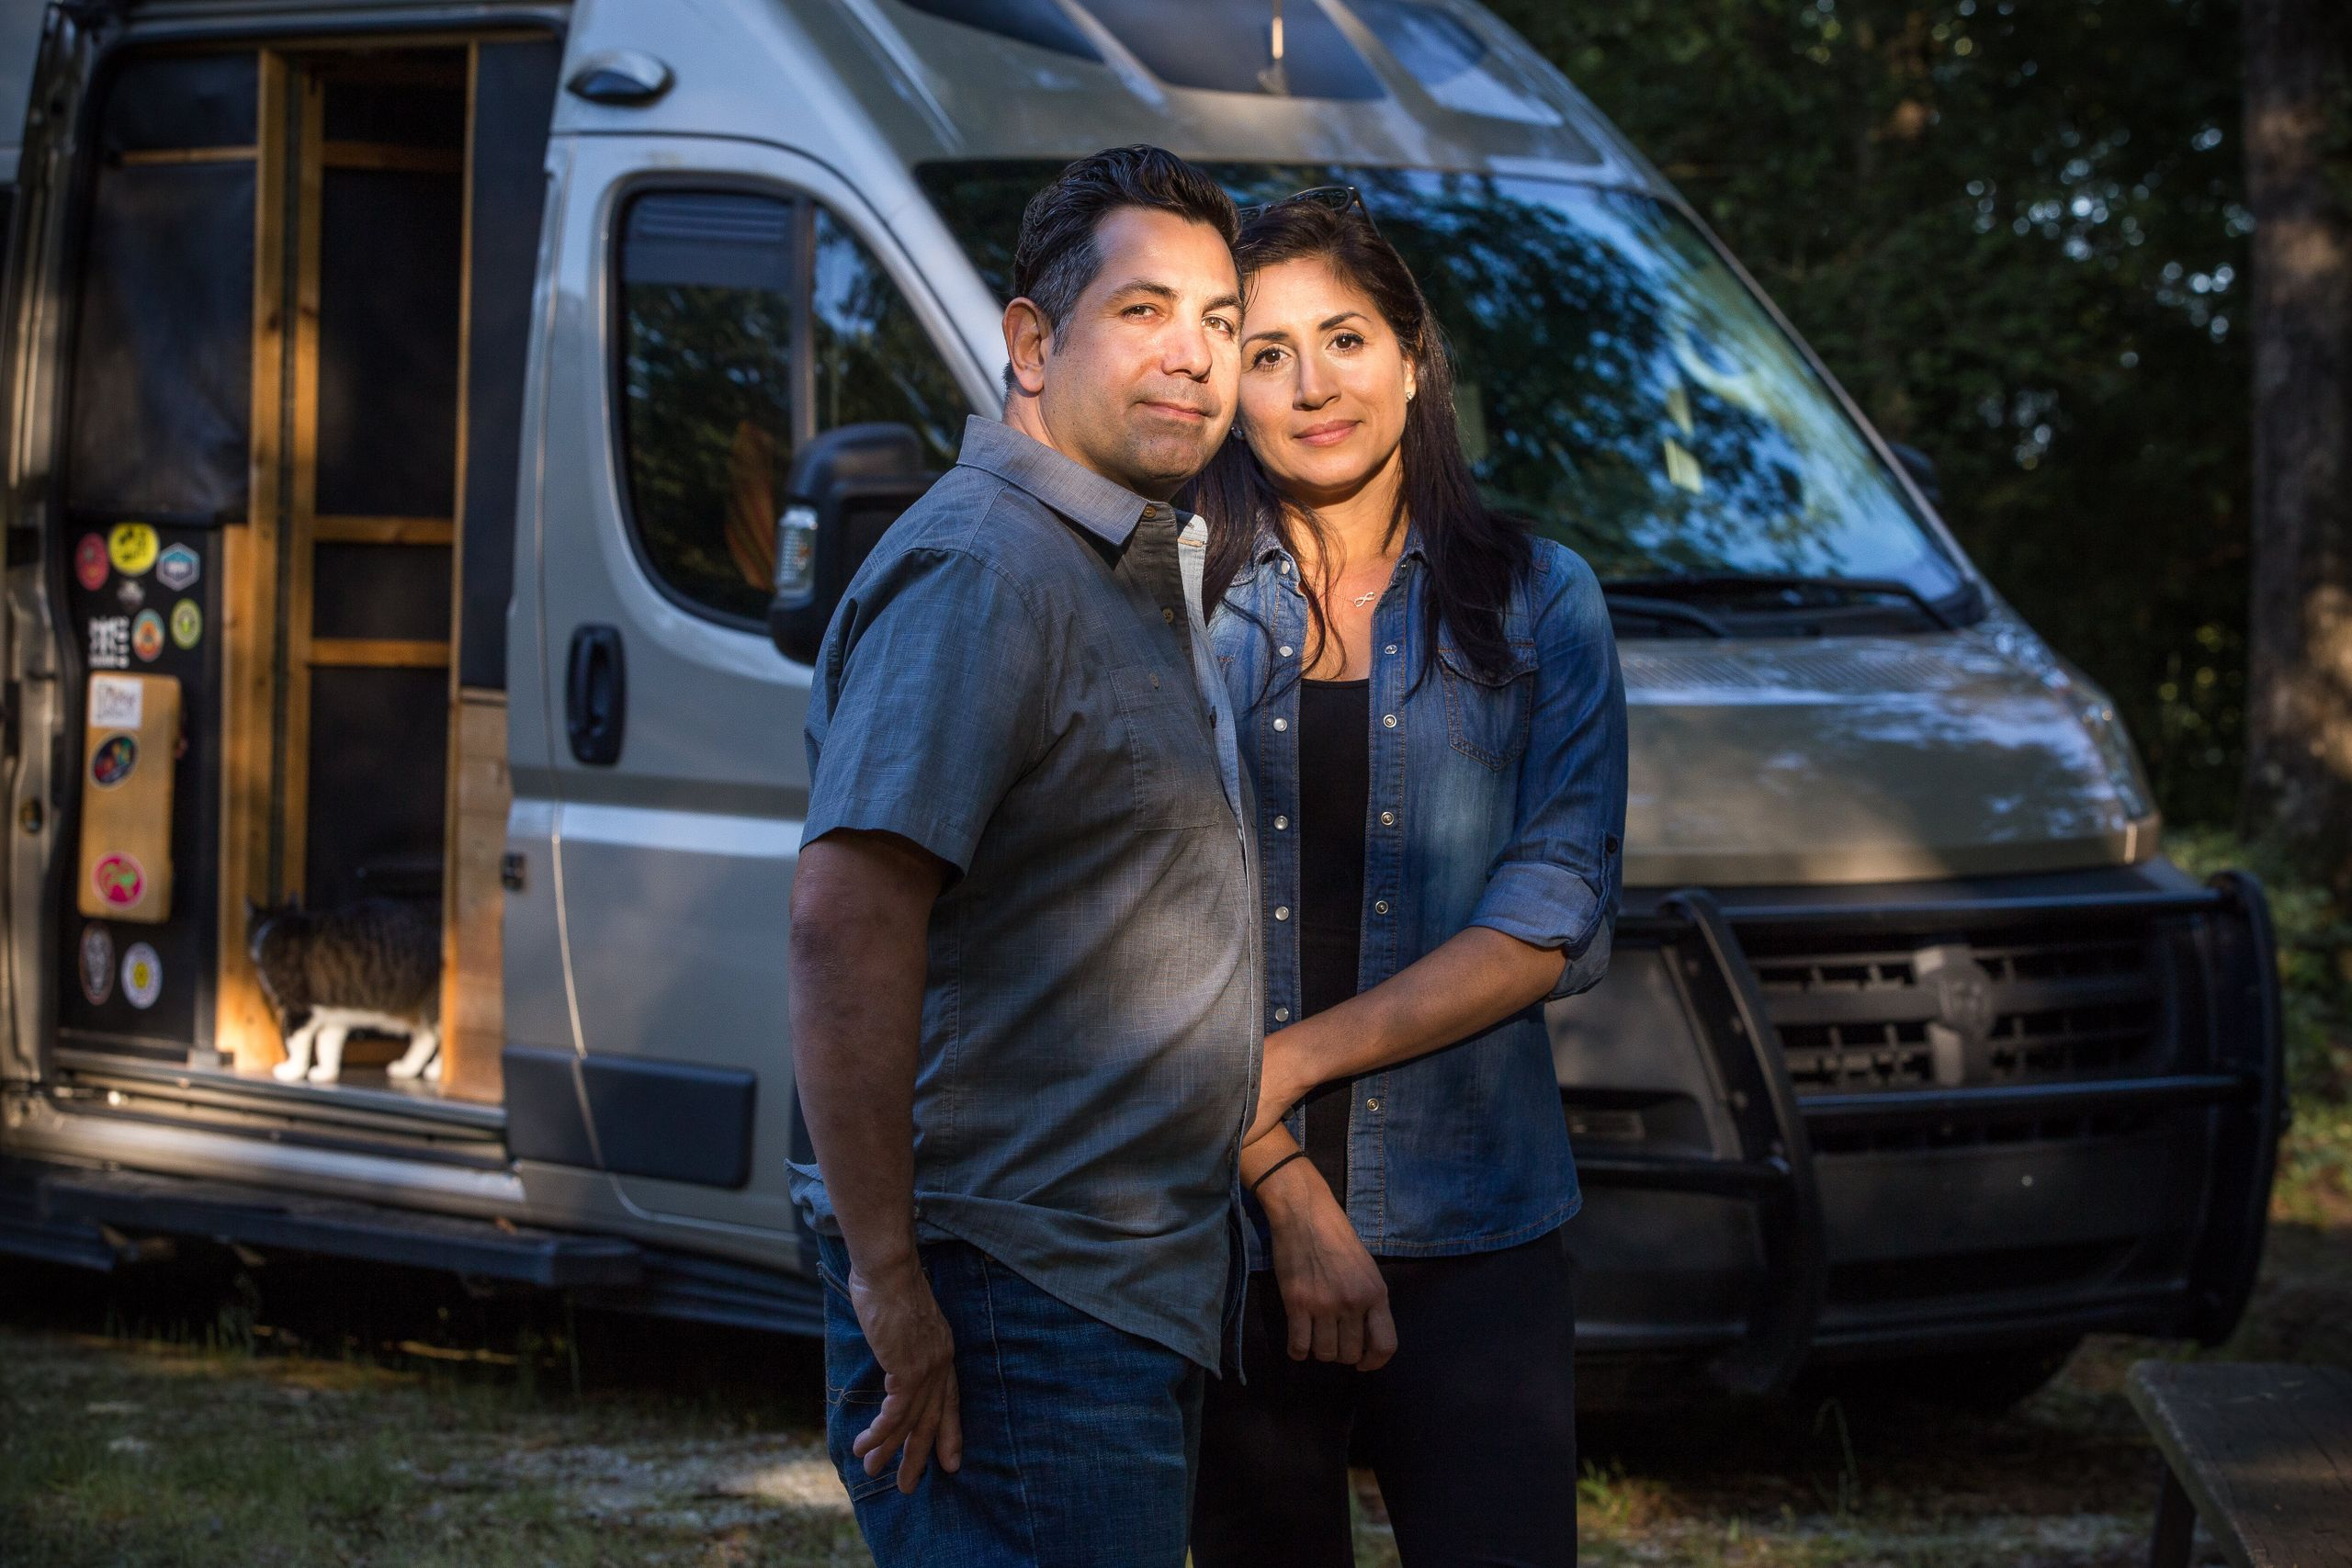 Denny Winkowski and Veronica Ibañes by their RV at Carolina Landing RV Resort in Fair Play, South Carolina, on Ma